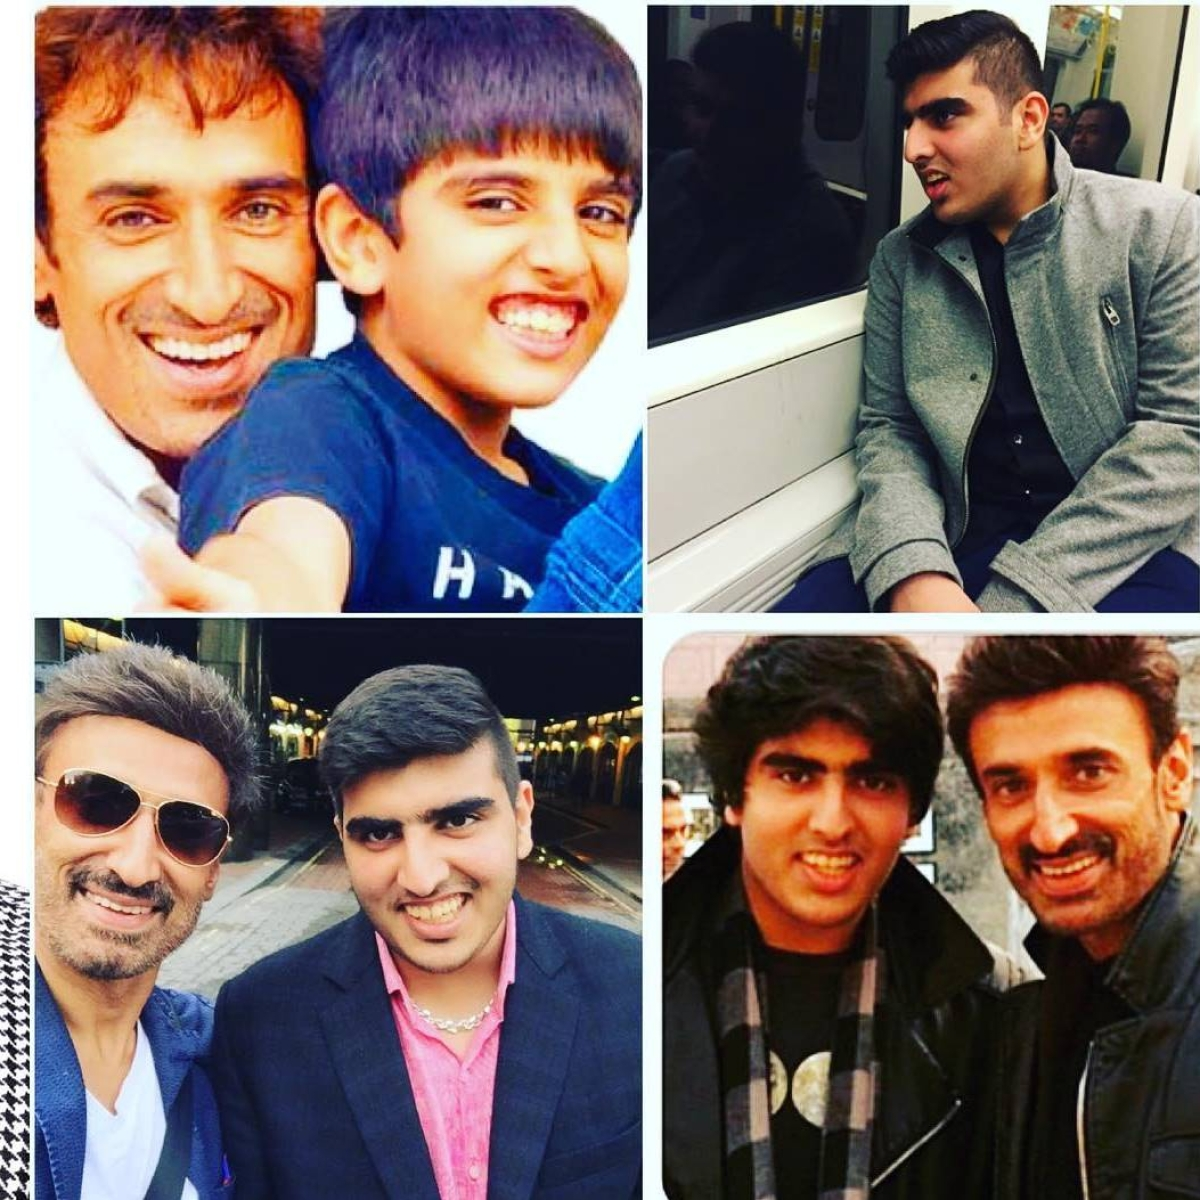 Father's Day 2021: 'One parent cannot fill the void for the other', says single dad Rahul Dev